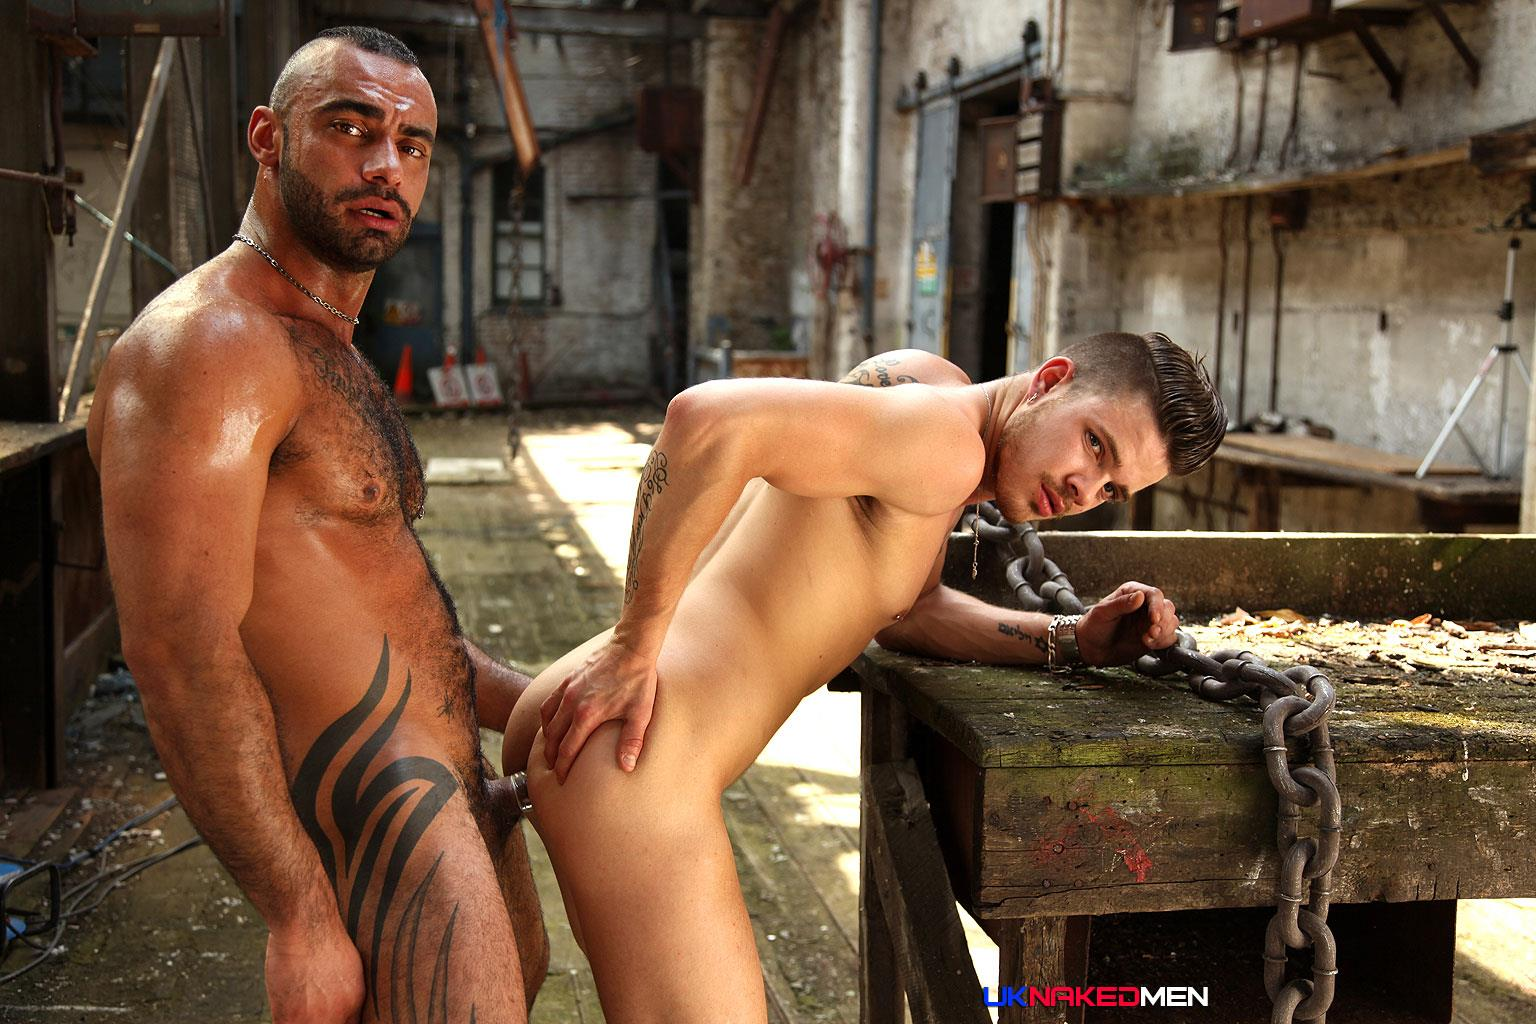 UK-Naked-Men-Fuck-Loving-Criminals-Episode-4-Tony-Thorn-and-Fabio-Lopez-Hairy-Arab-Fucking-A-Smooth-Guy-Amateur-Gay-Porn-16 Hairy Muscle Stud Tony Thorn Fucking Smooth Muscle Hunk Fabio Lopez